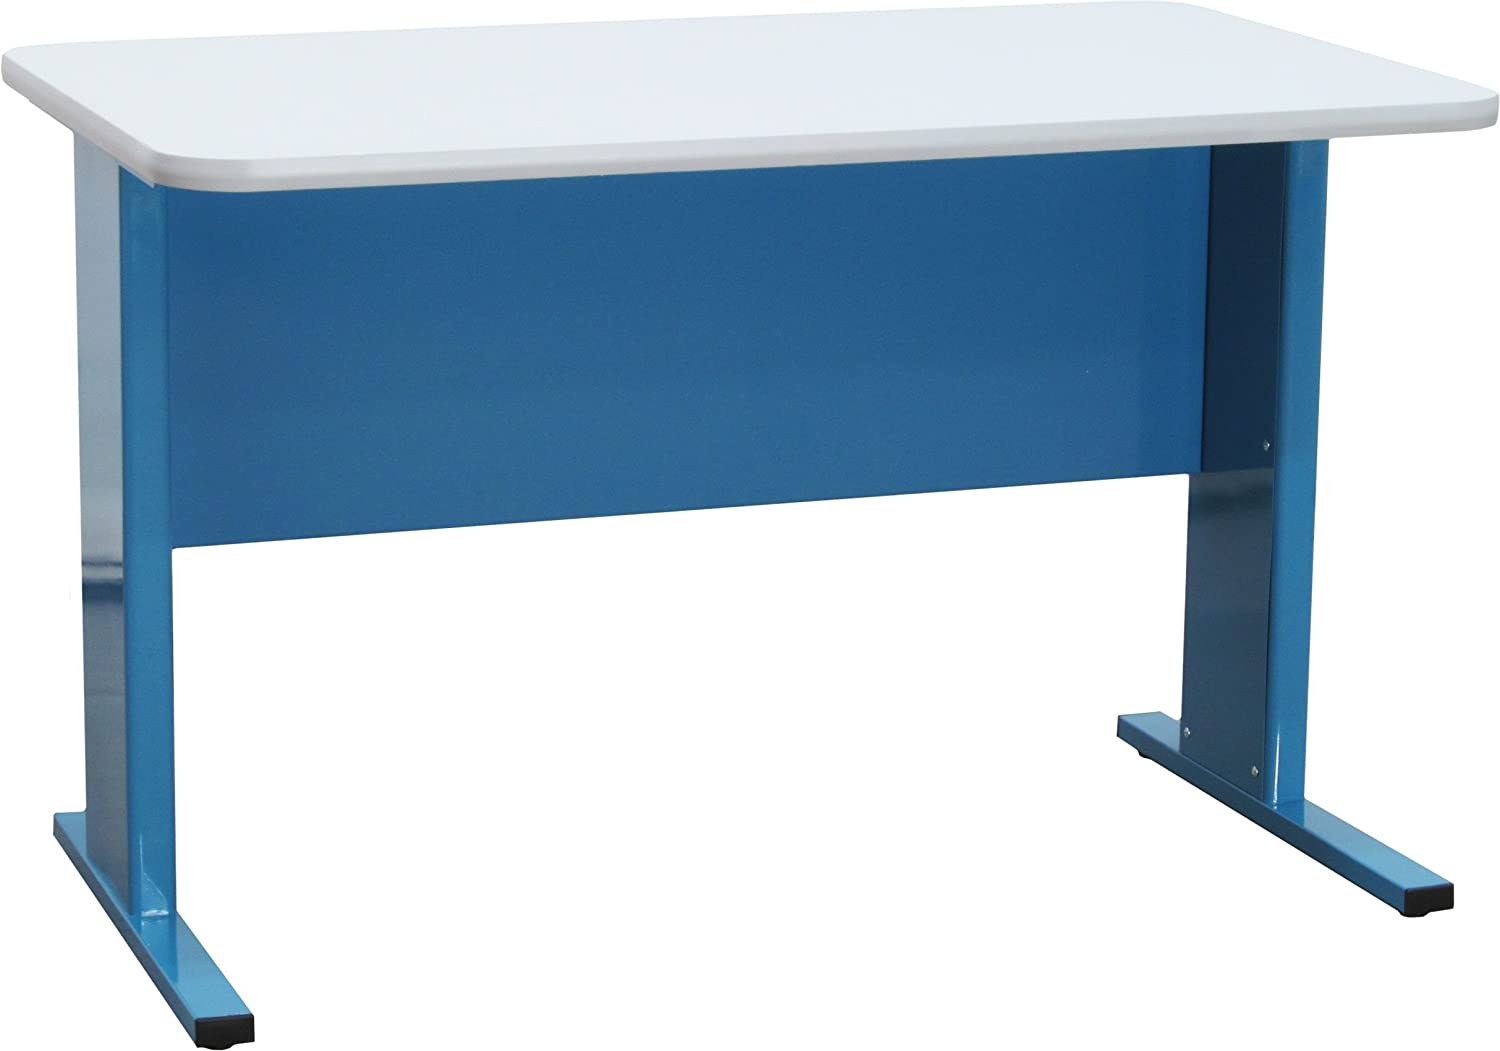 Terrific Apeco Bluejay Workbench Esd Anti Static Laminate Workstation Bralicious Painted Fabric Chair Ideas Braliciousco